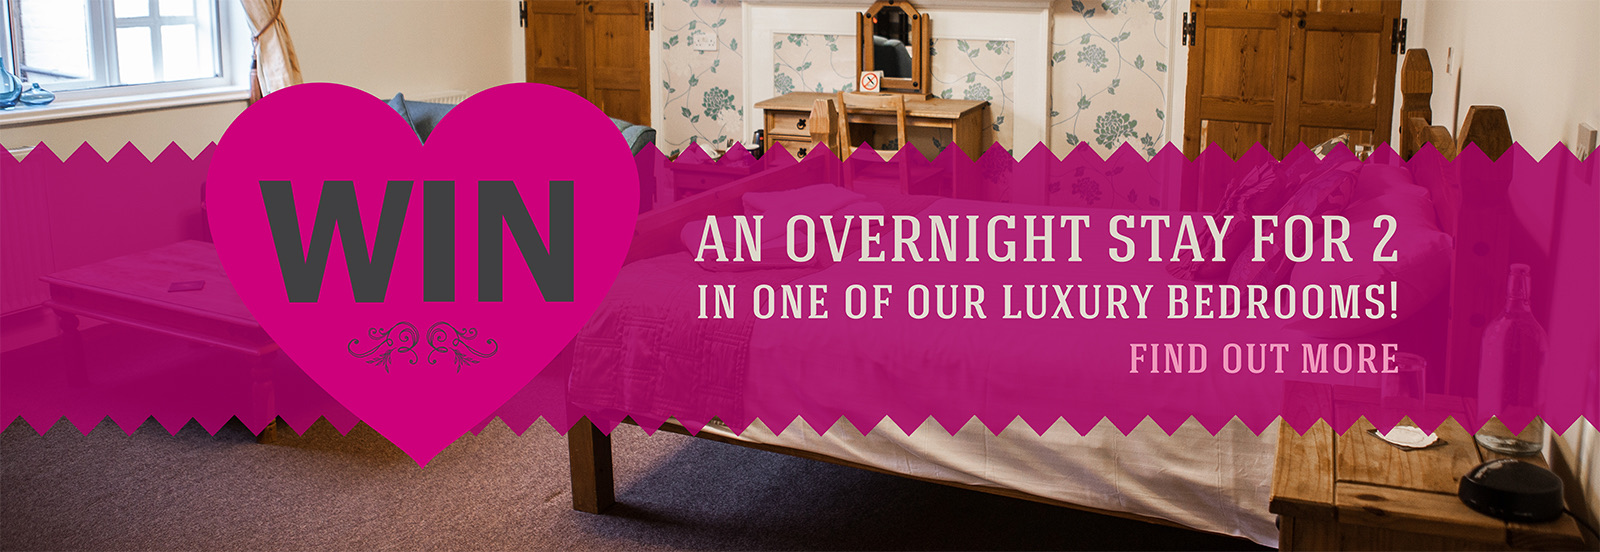 Book your table for two on valentine's weekend at The Littleton Arms and you could win a romantic overnight stay with your partner in one of our luxury, boutique bedrooms!